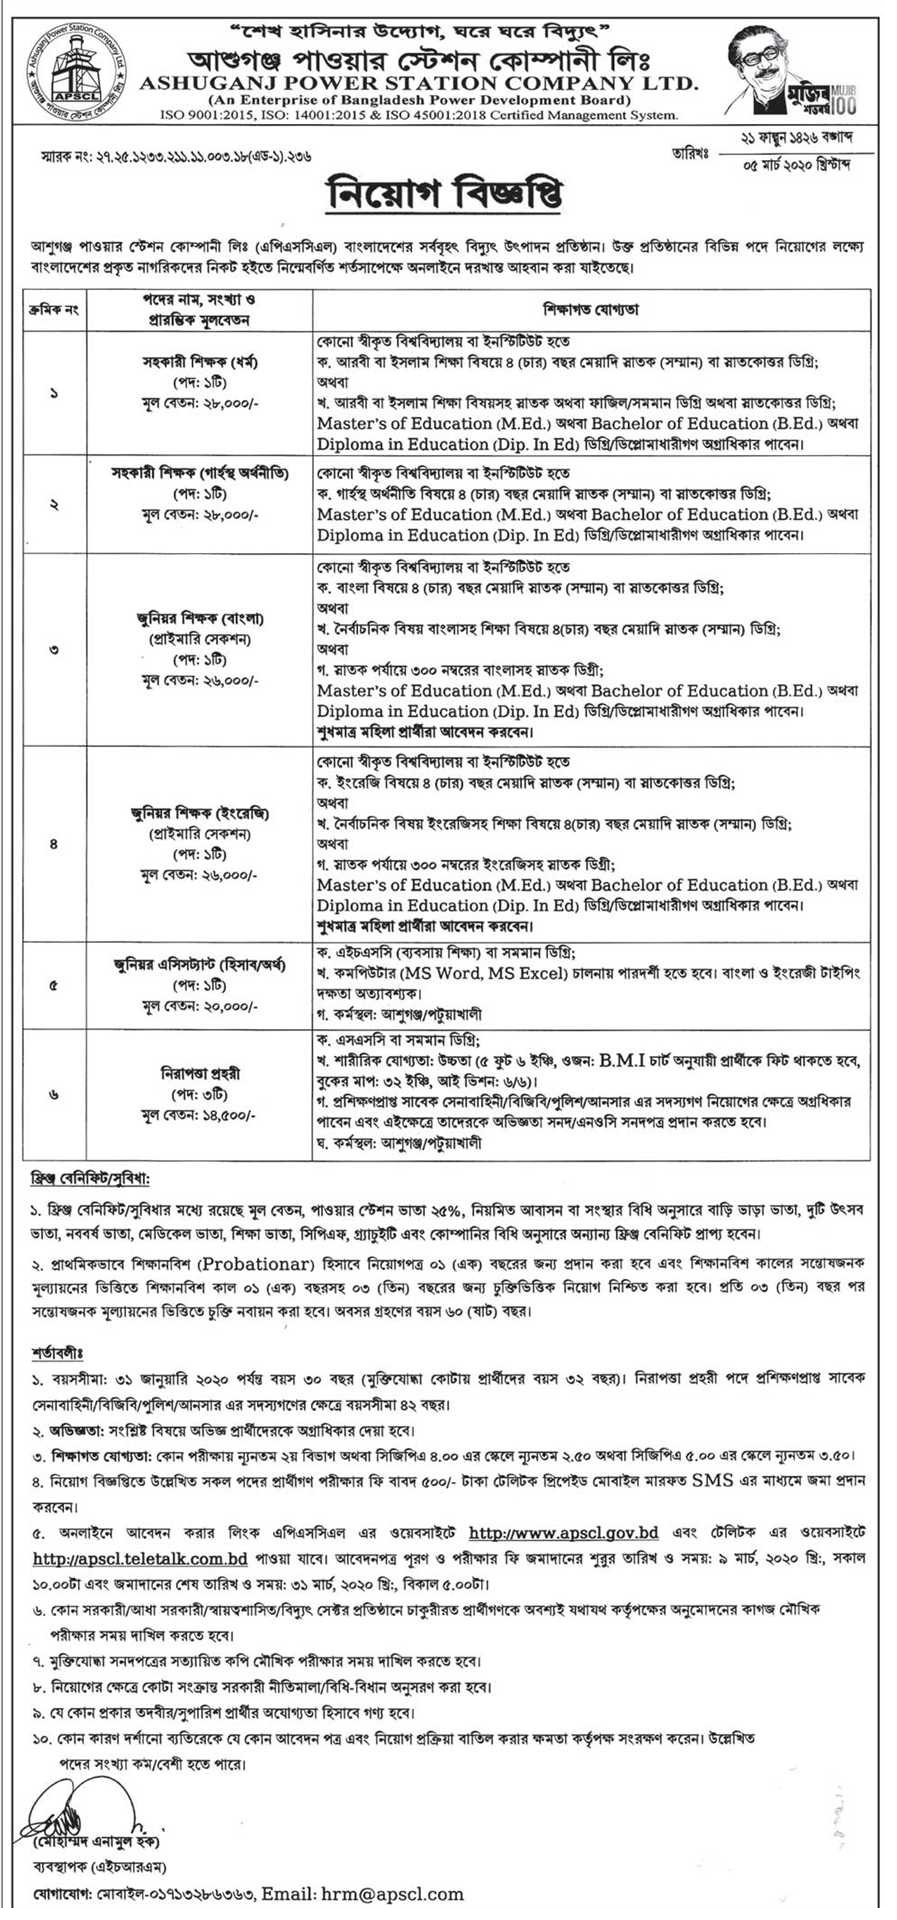 Ashuganj Power Station Company Limited Job Circular 2020